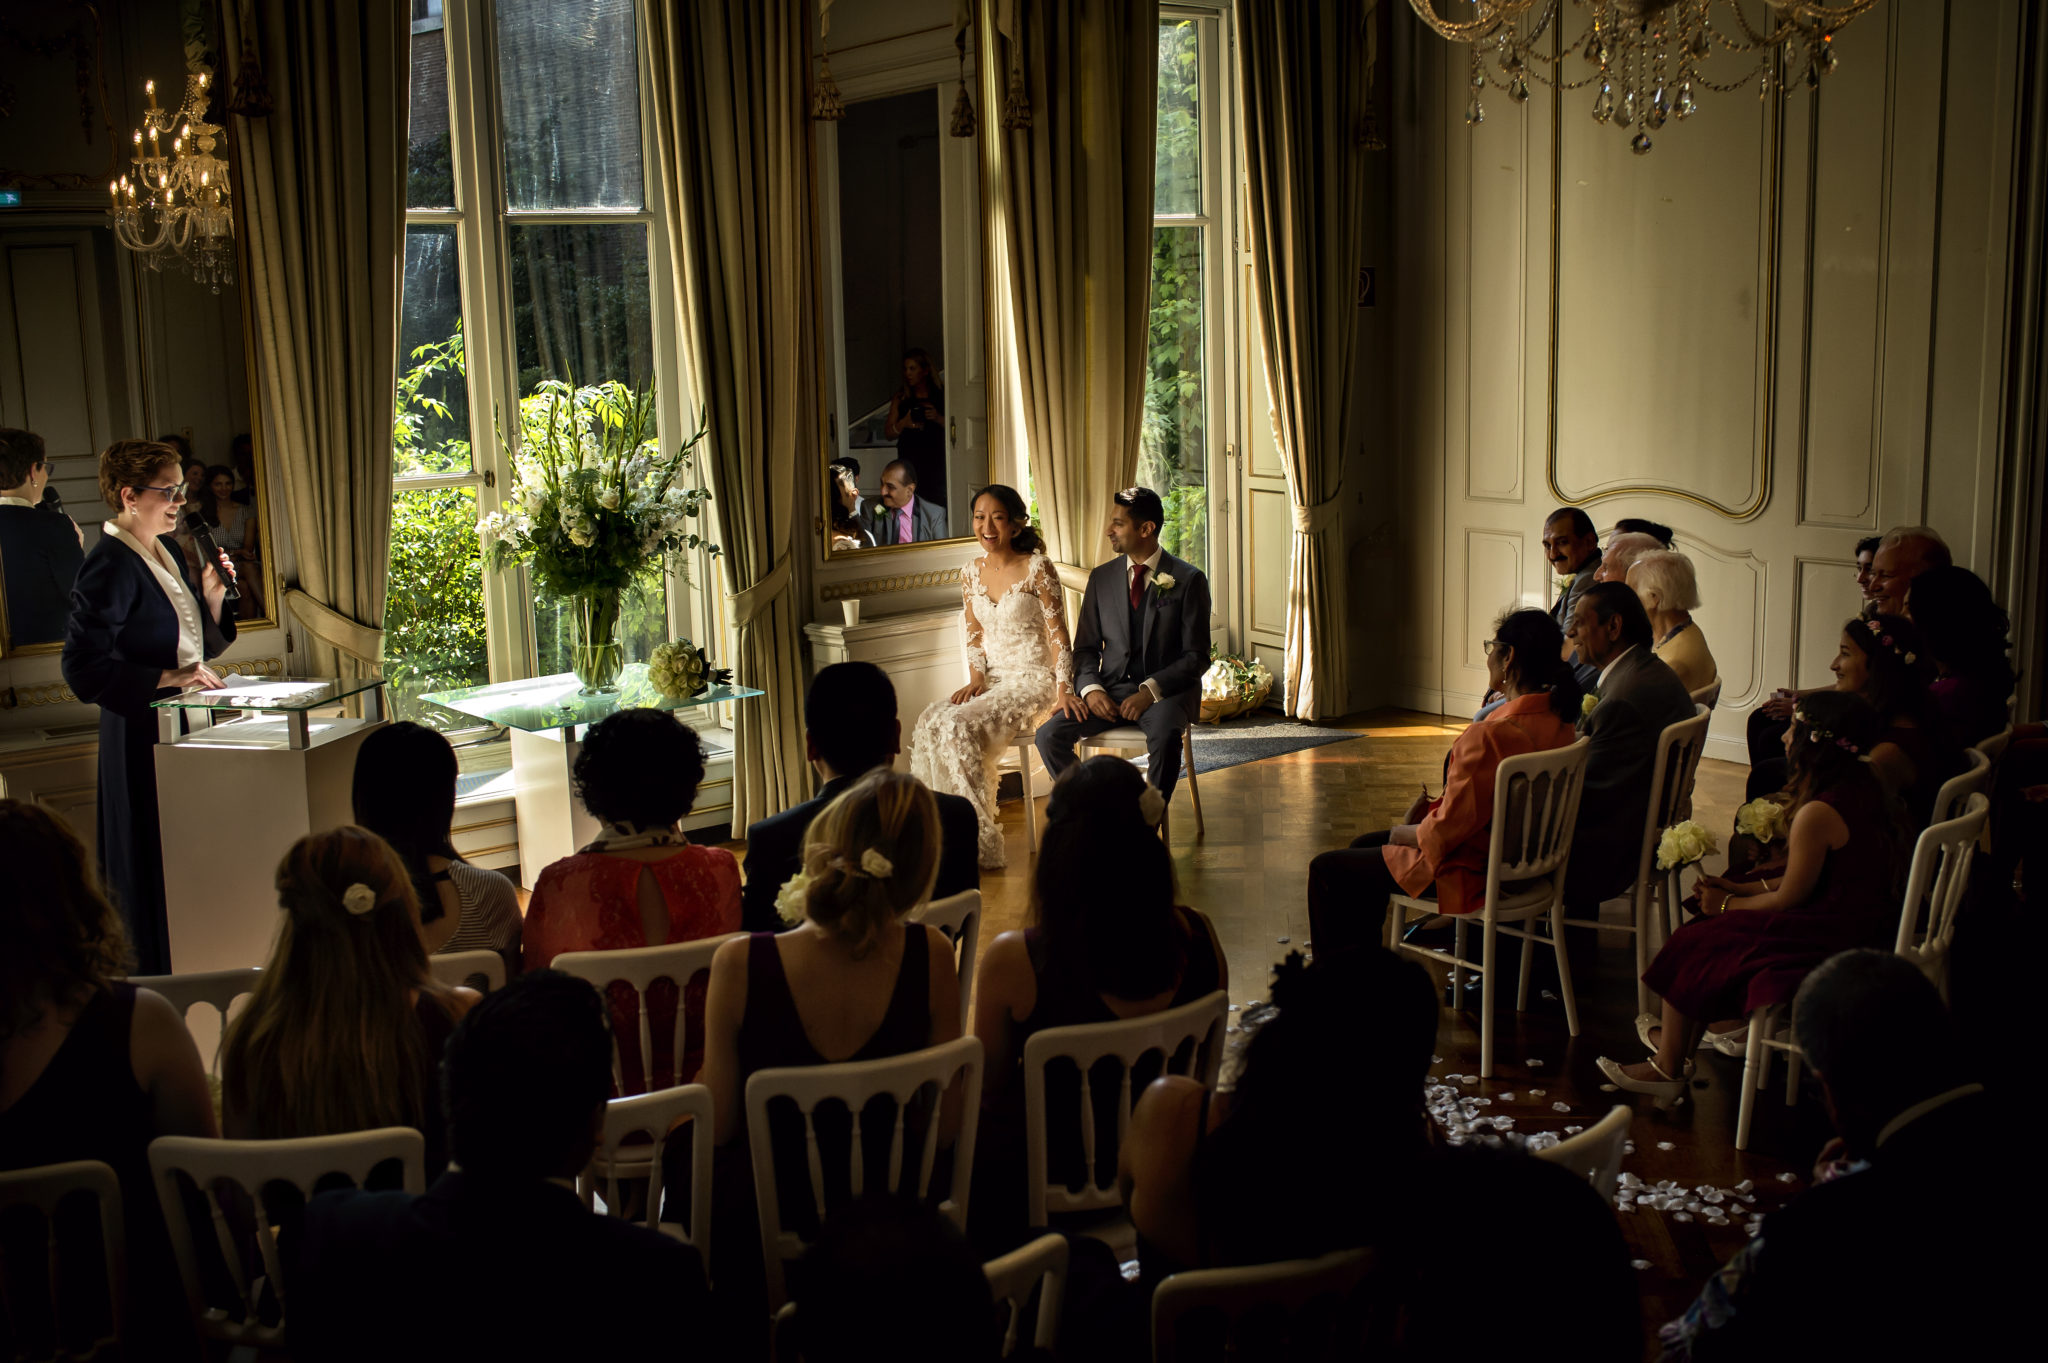 wedding-photographer-lake como-001 (11)